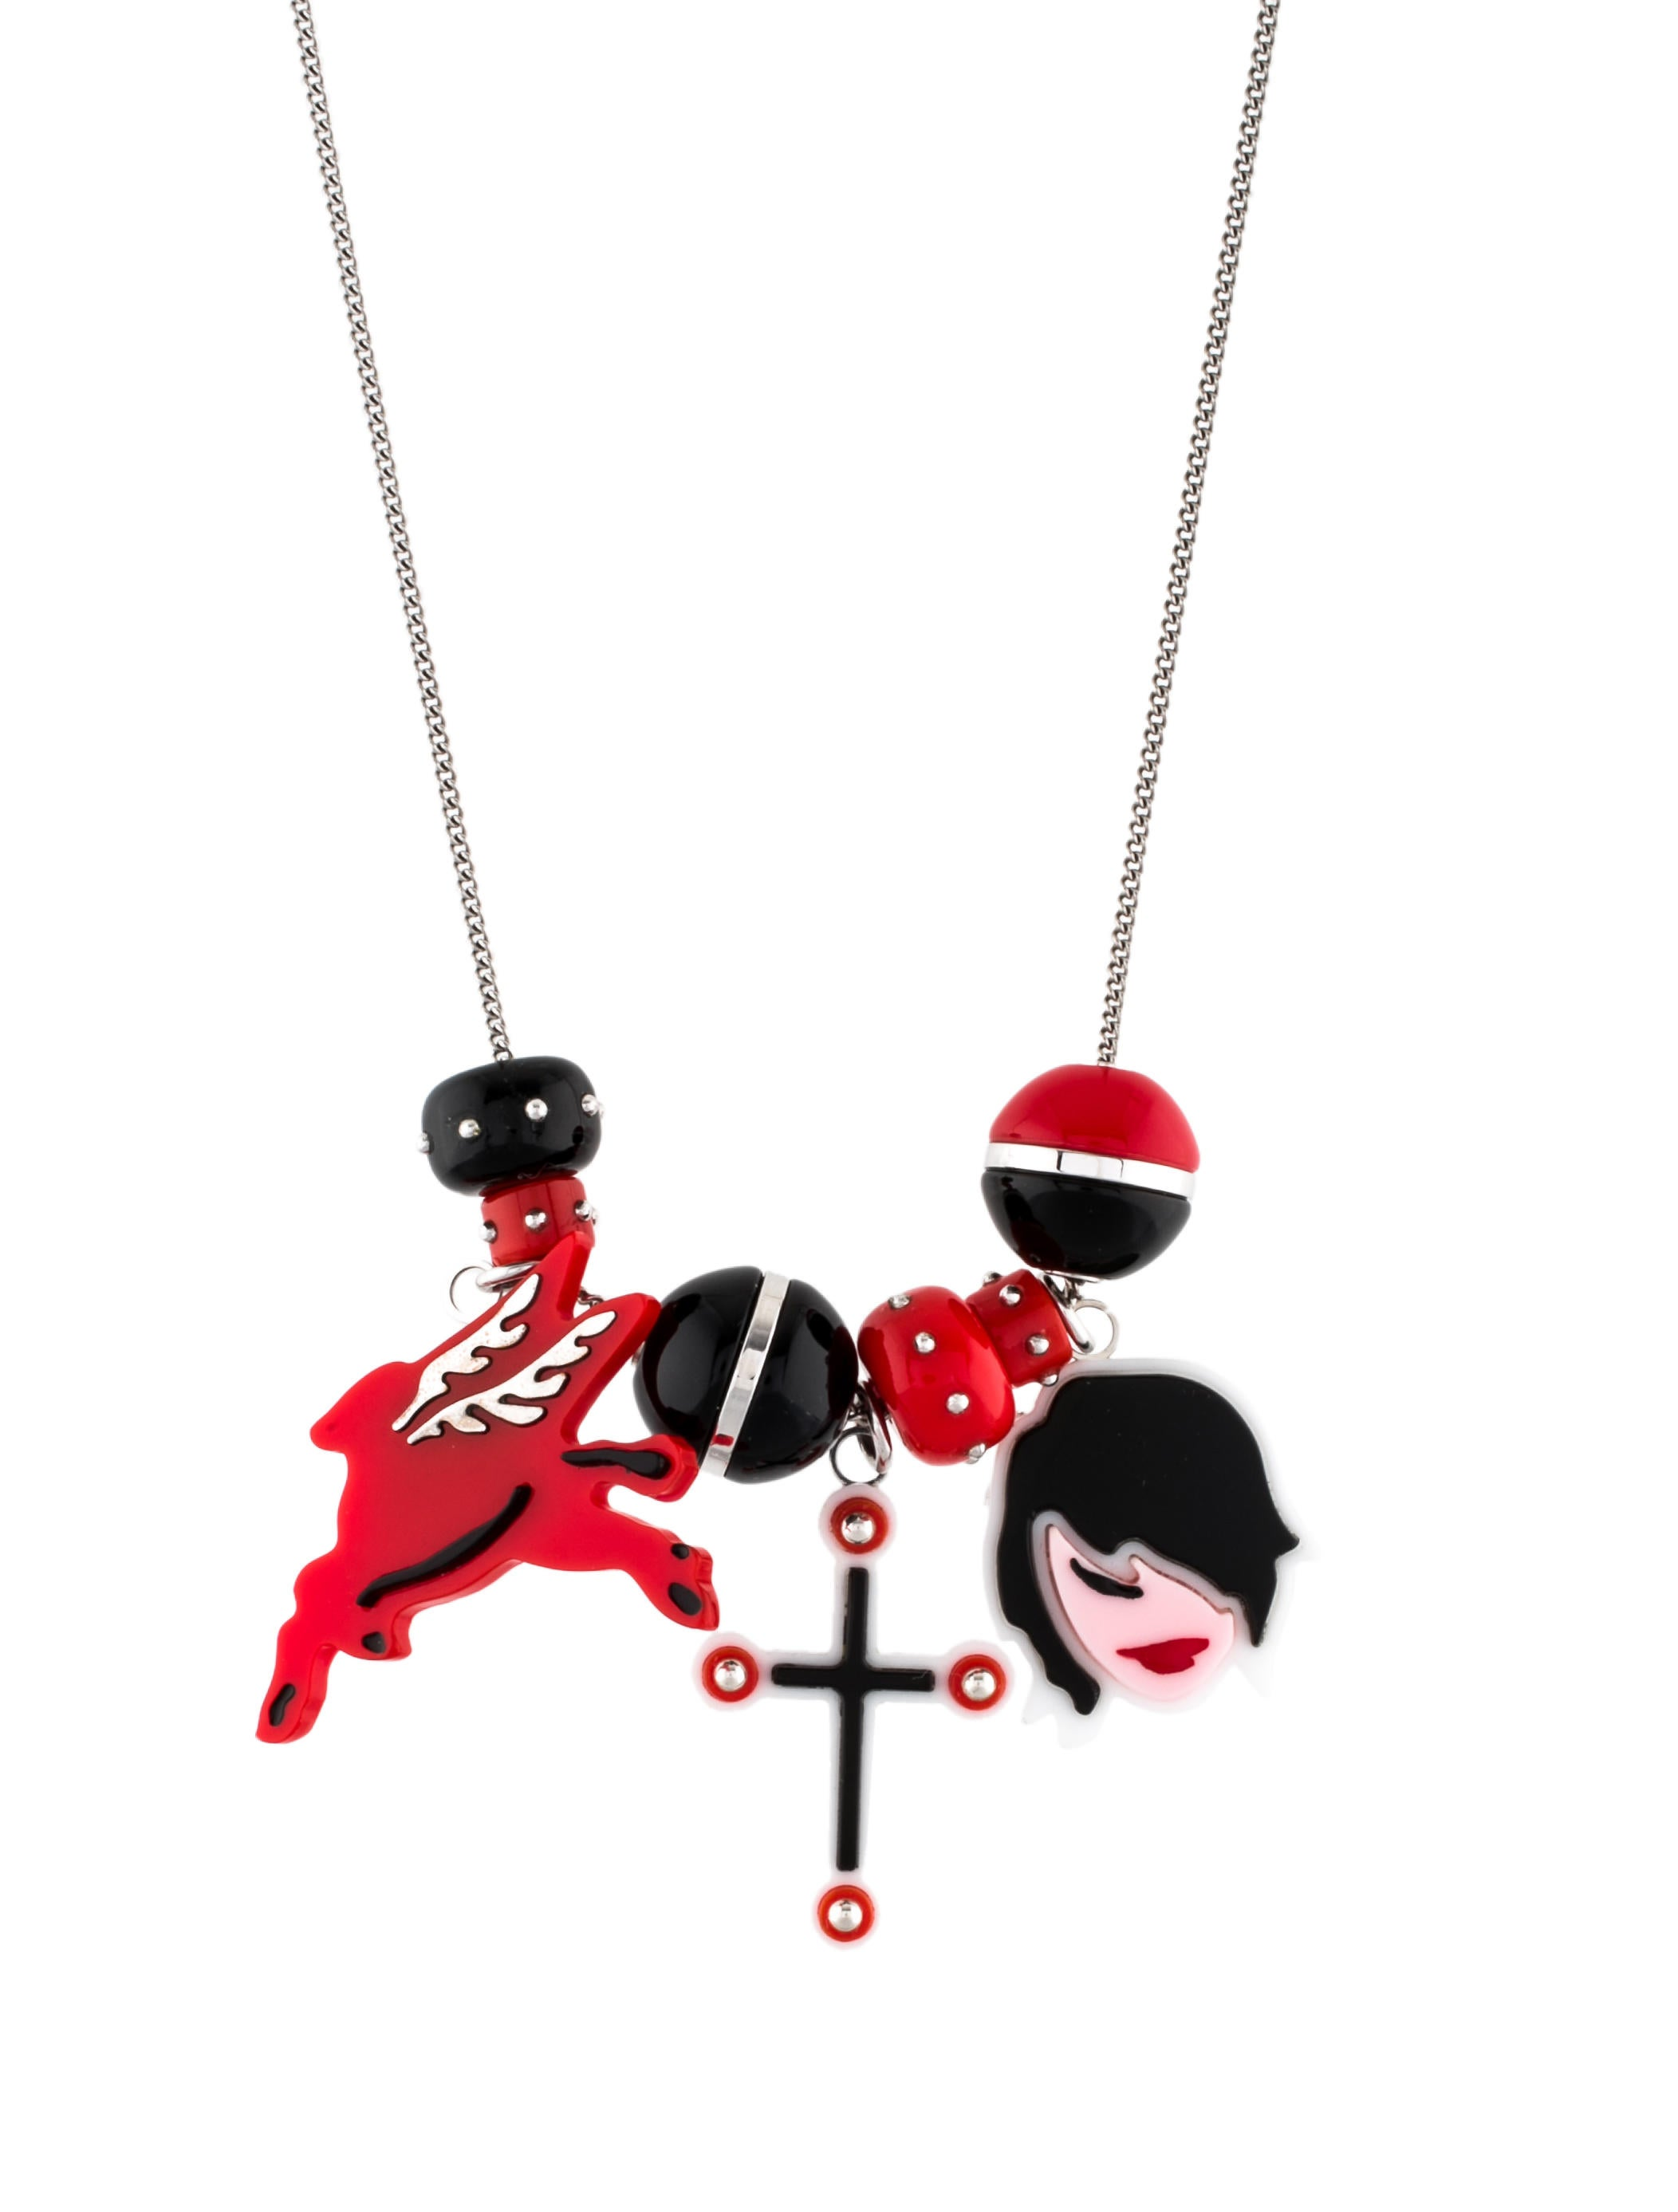 Prada Prada Pop Necklace DJLwer